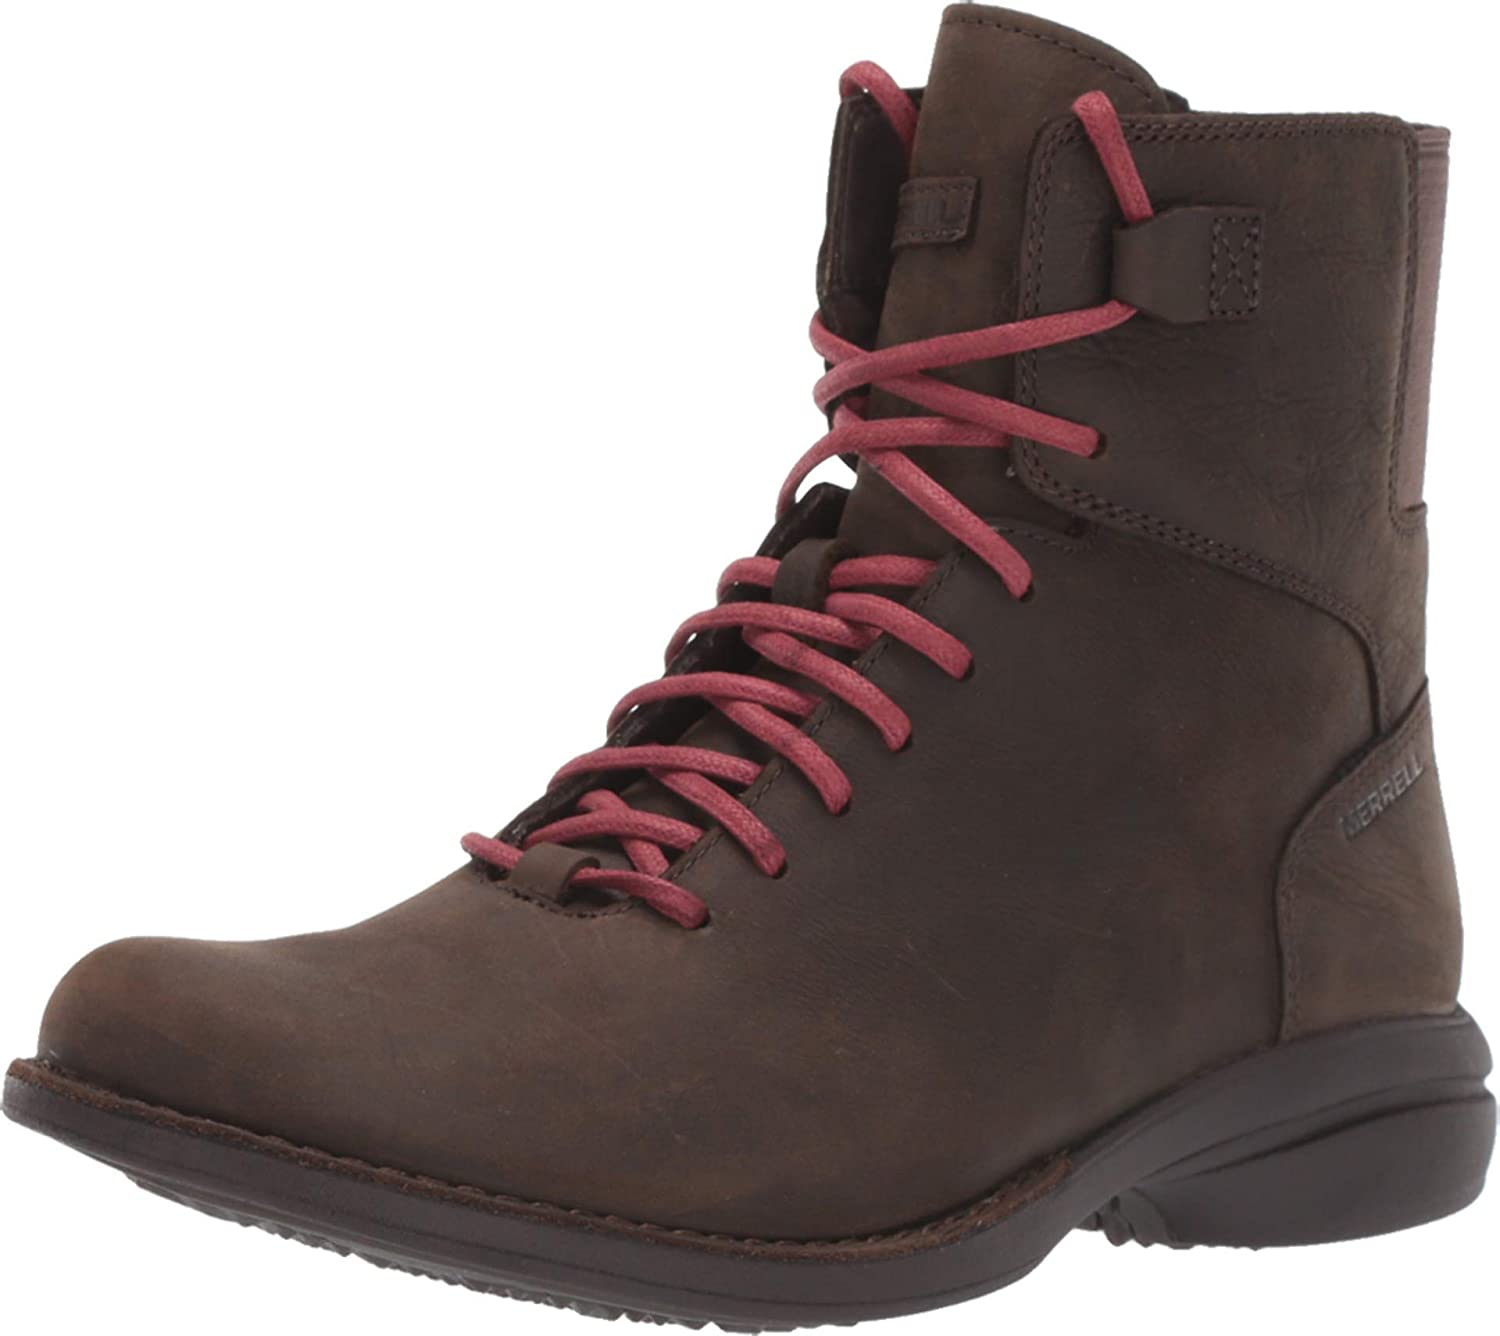 Andover Mid Lace Waterproof Hiking Boot